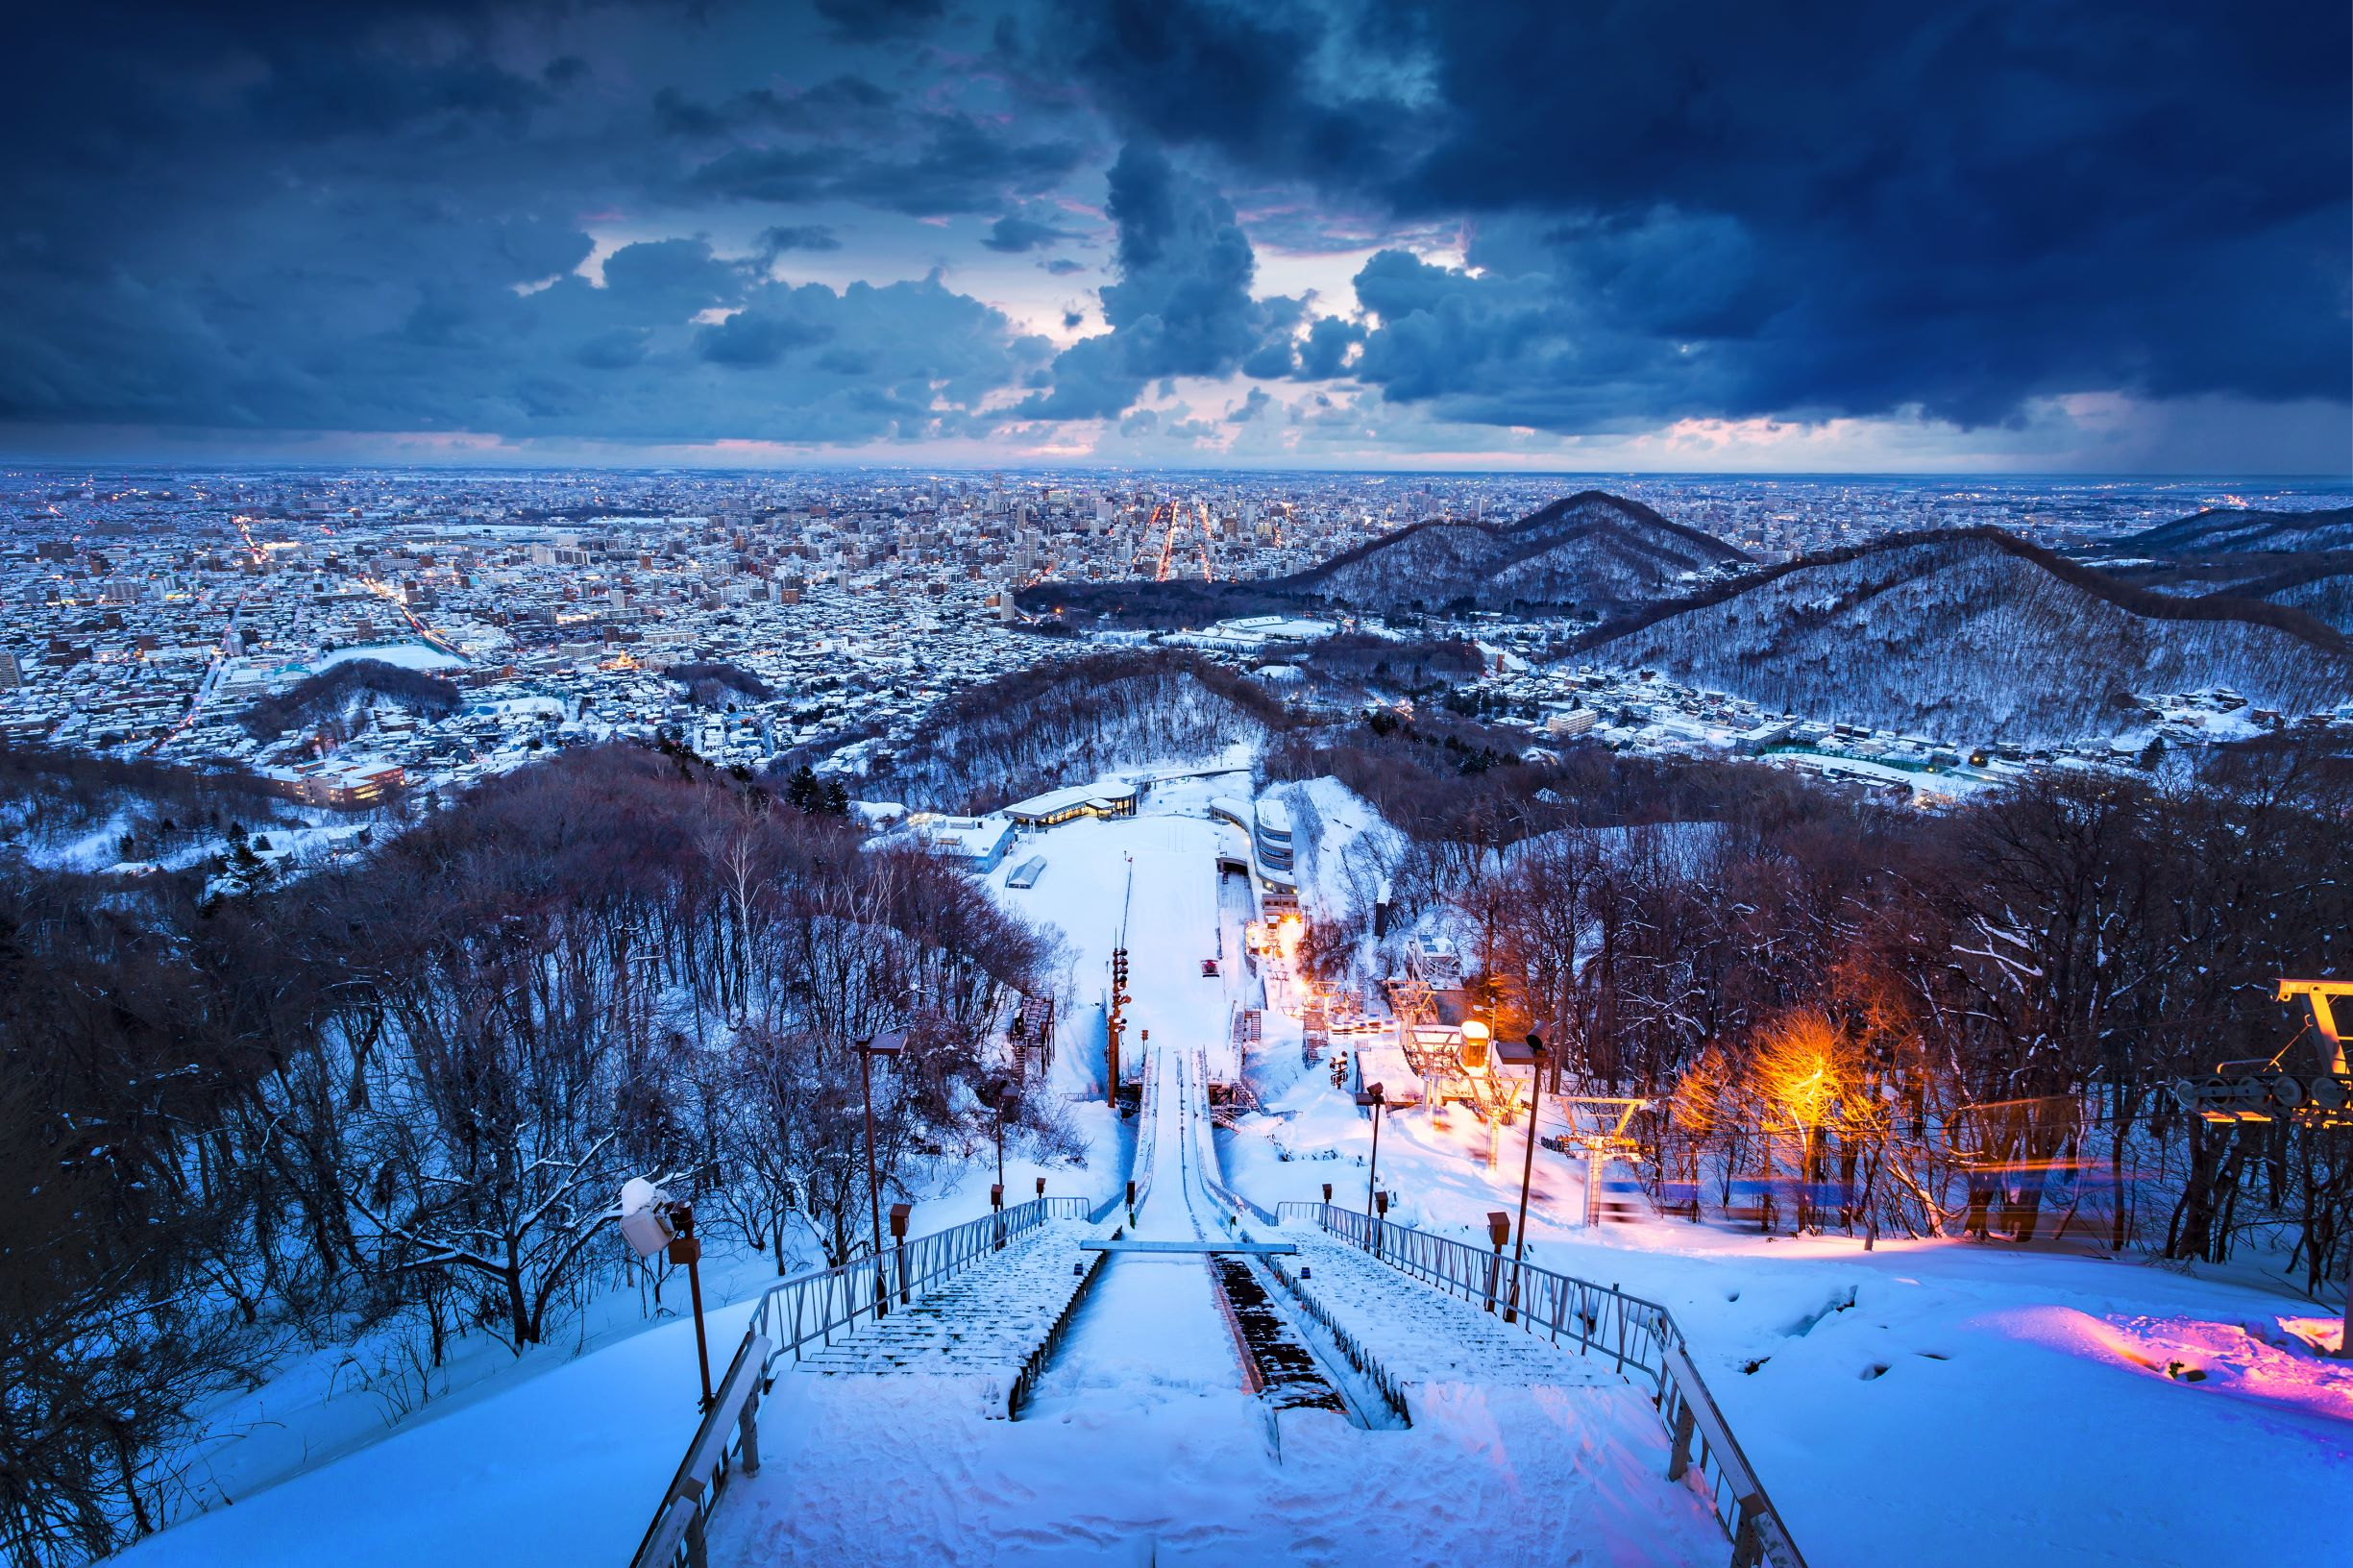 Snow-covered Japan city